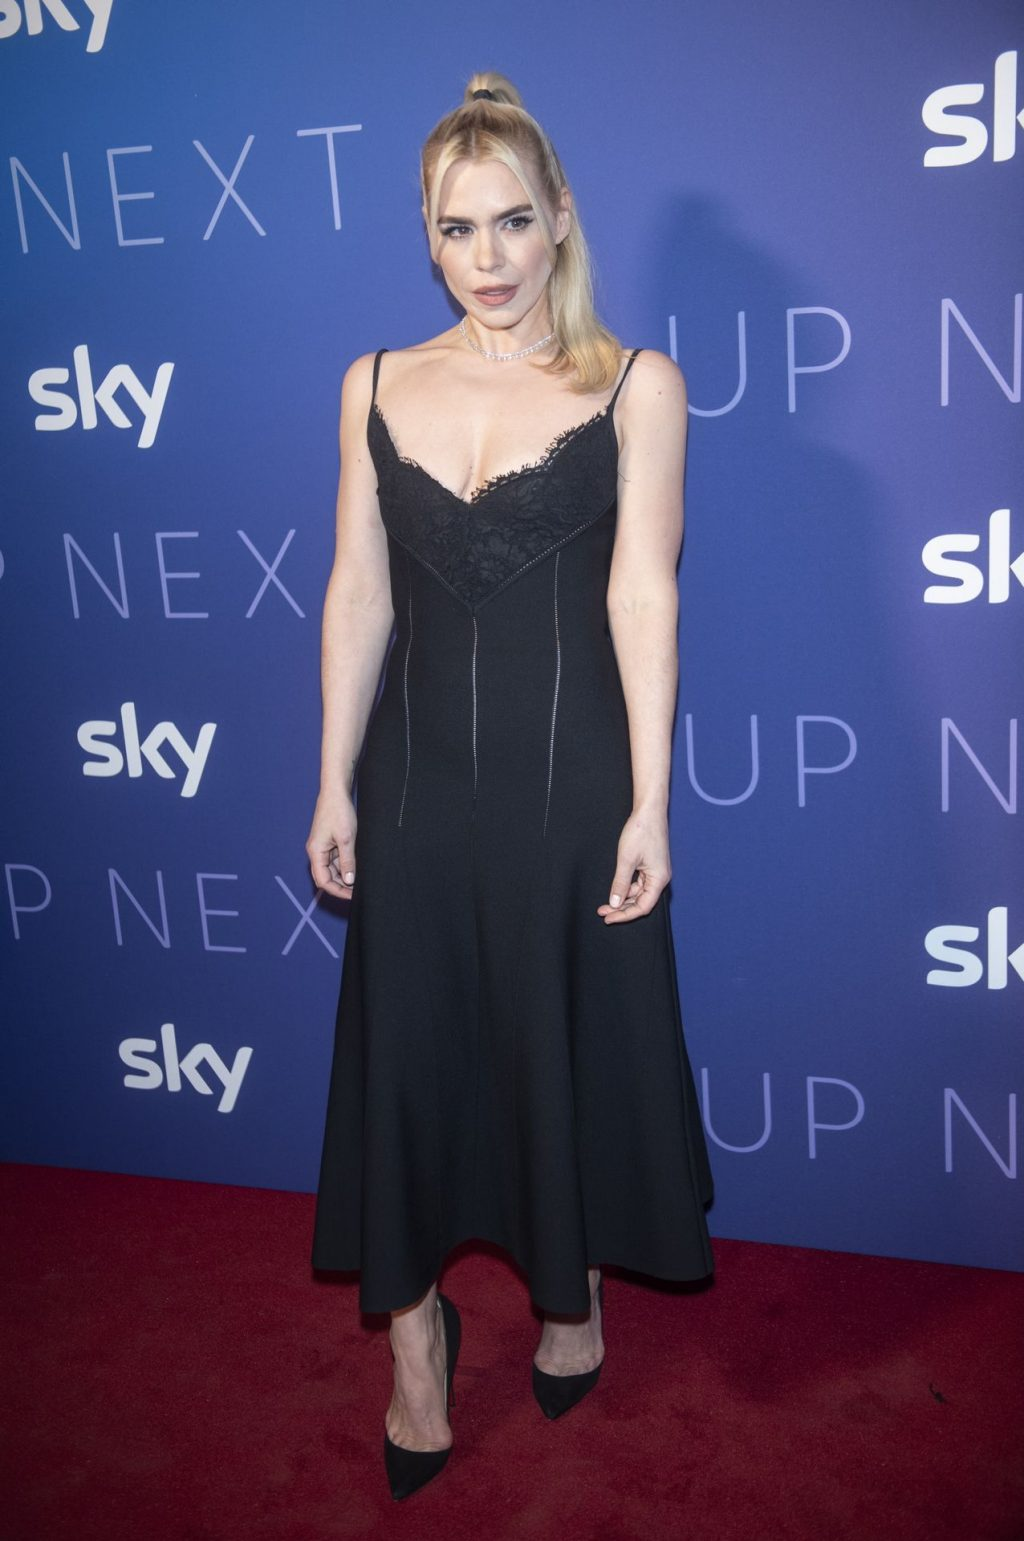 Billie Piper Sexy The Fappening Blog 45 1024x1541 - Billie Piper Smiles at the Sky Up Next Event (67 Photos)